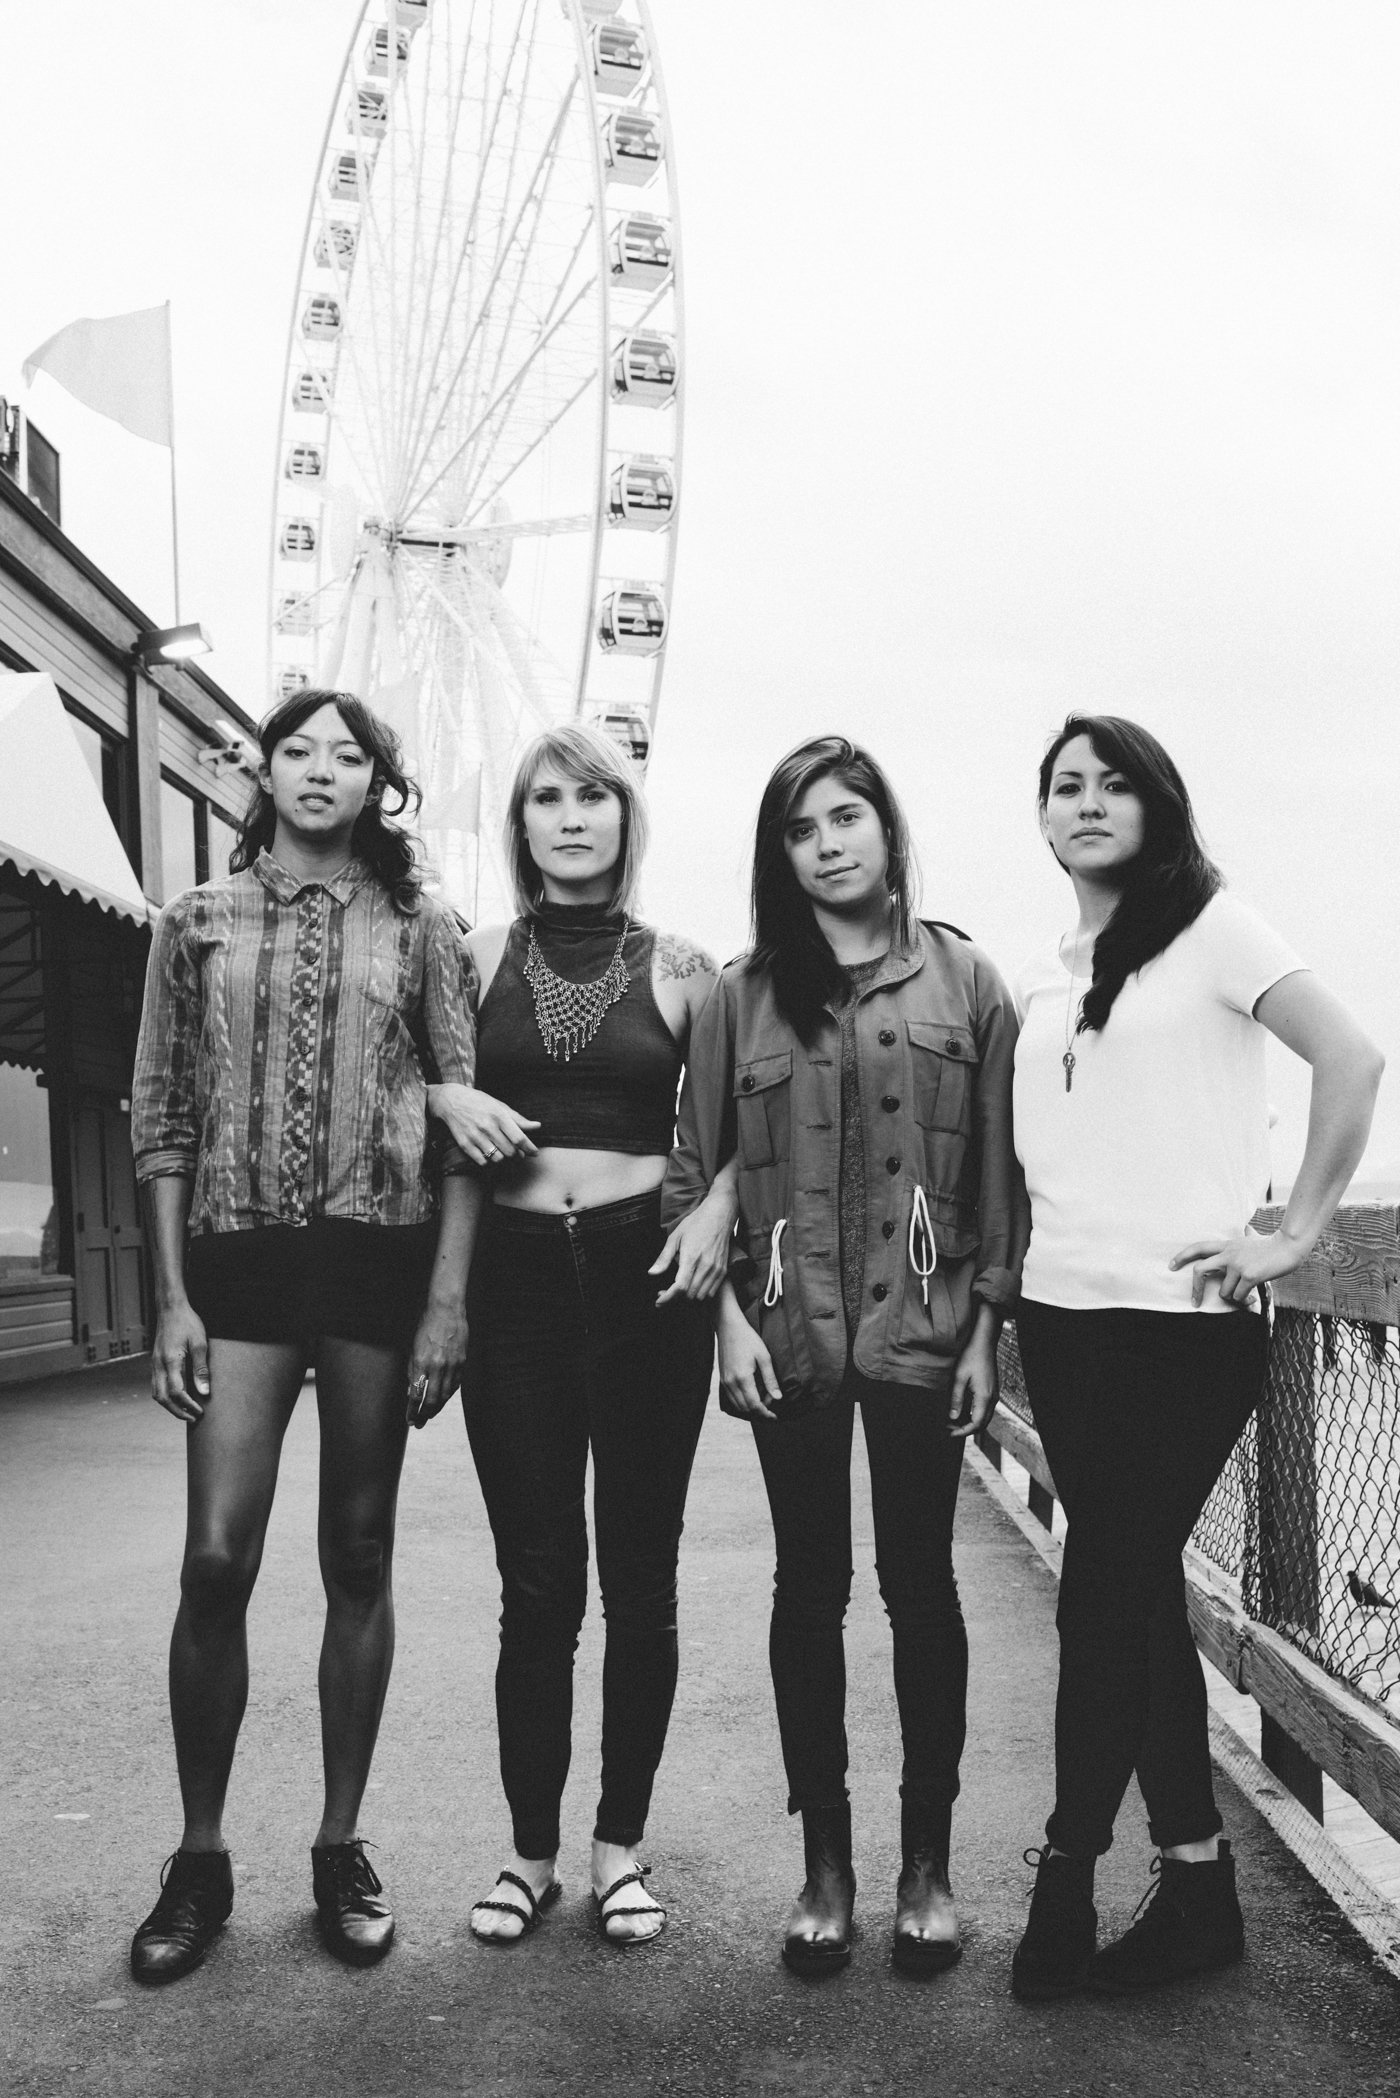 la luz The latest tweets from la luz (@laluzers): holy smokes only 4 shows left in euroland come see us in hamburg tonight, then the netherlands and istanbul.